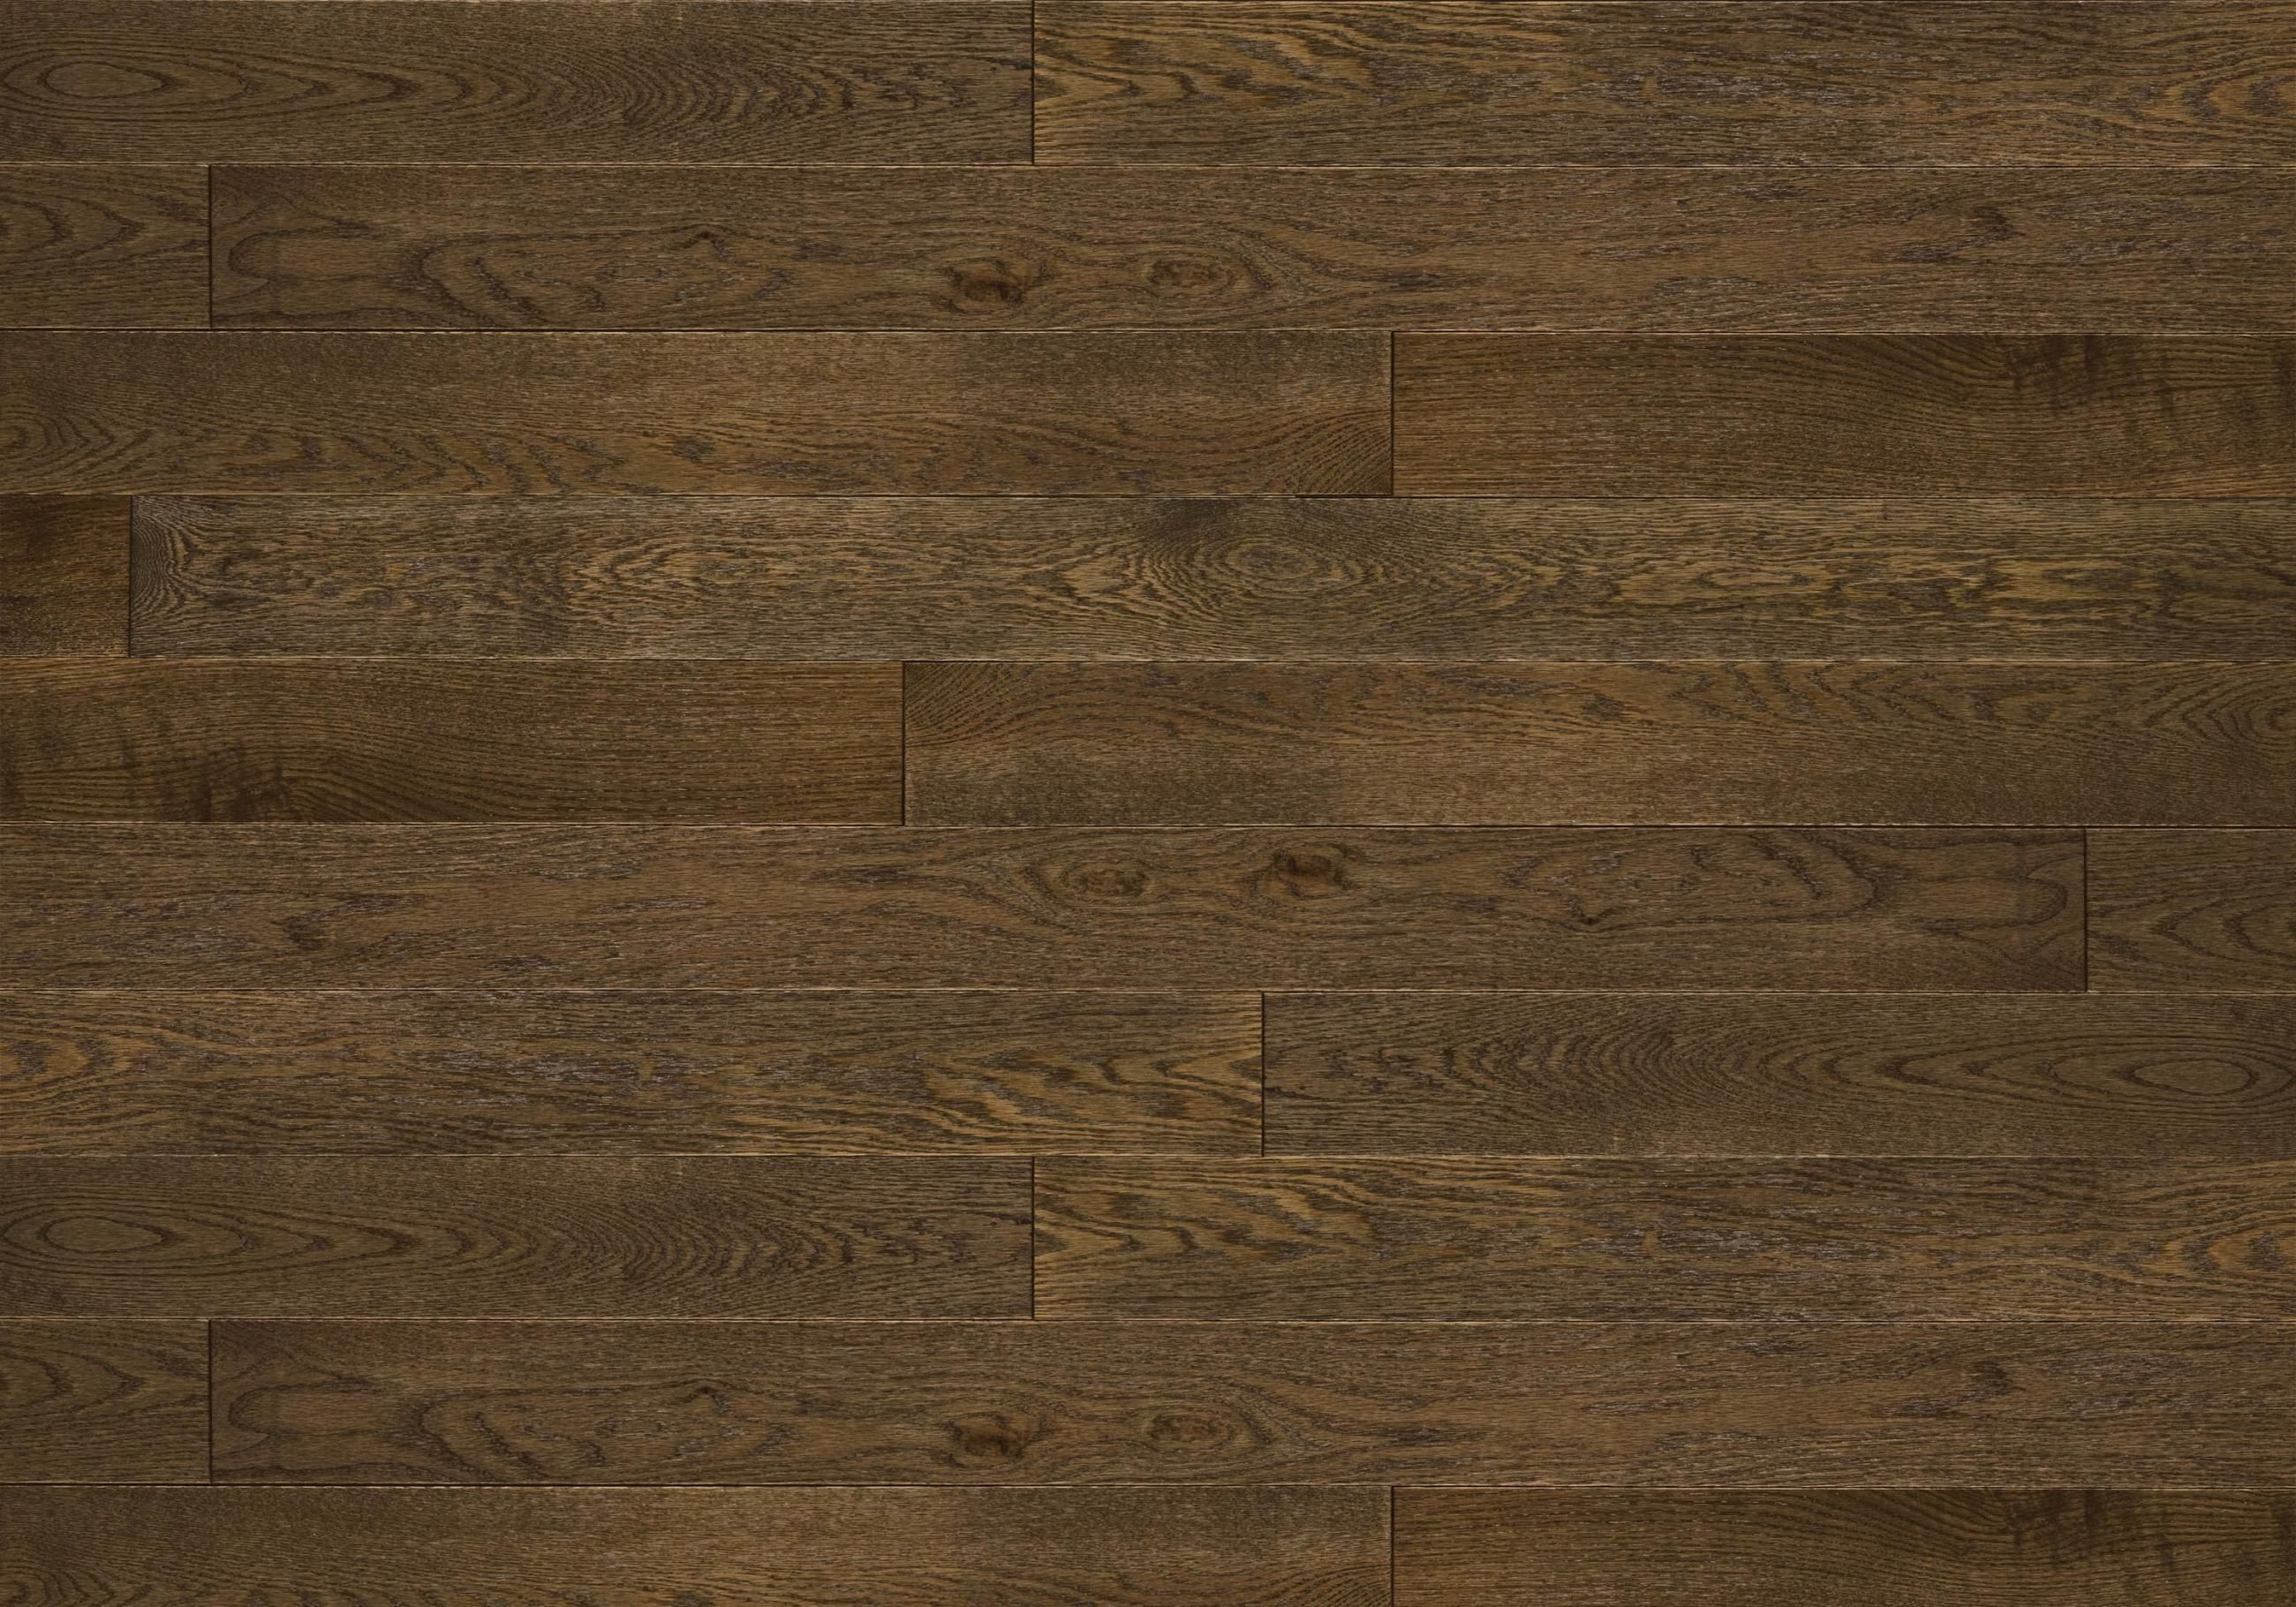 lauzon hardwood flooring reviews of hadinger flooring white laminate flooring unique cost for new regarding reviews wayfair hadinger flooring sincero ambiance red oak character lauzon hardwood flooring